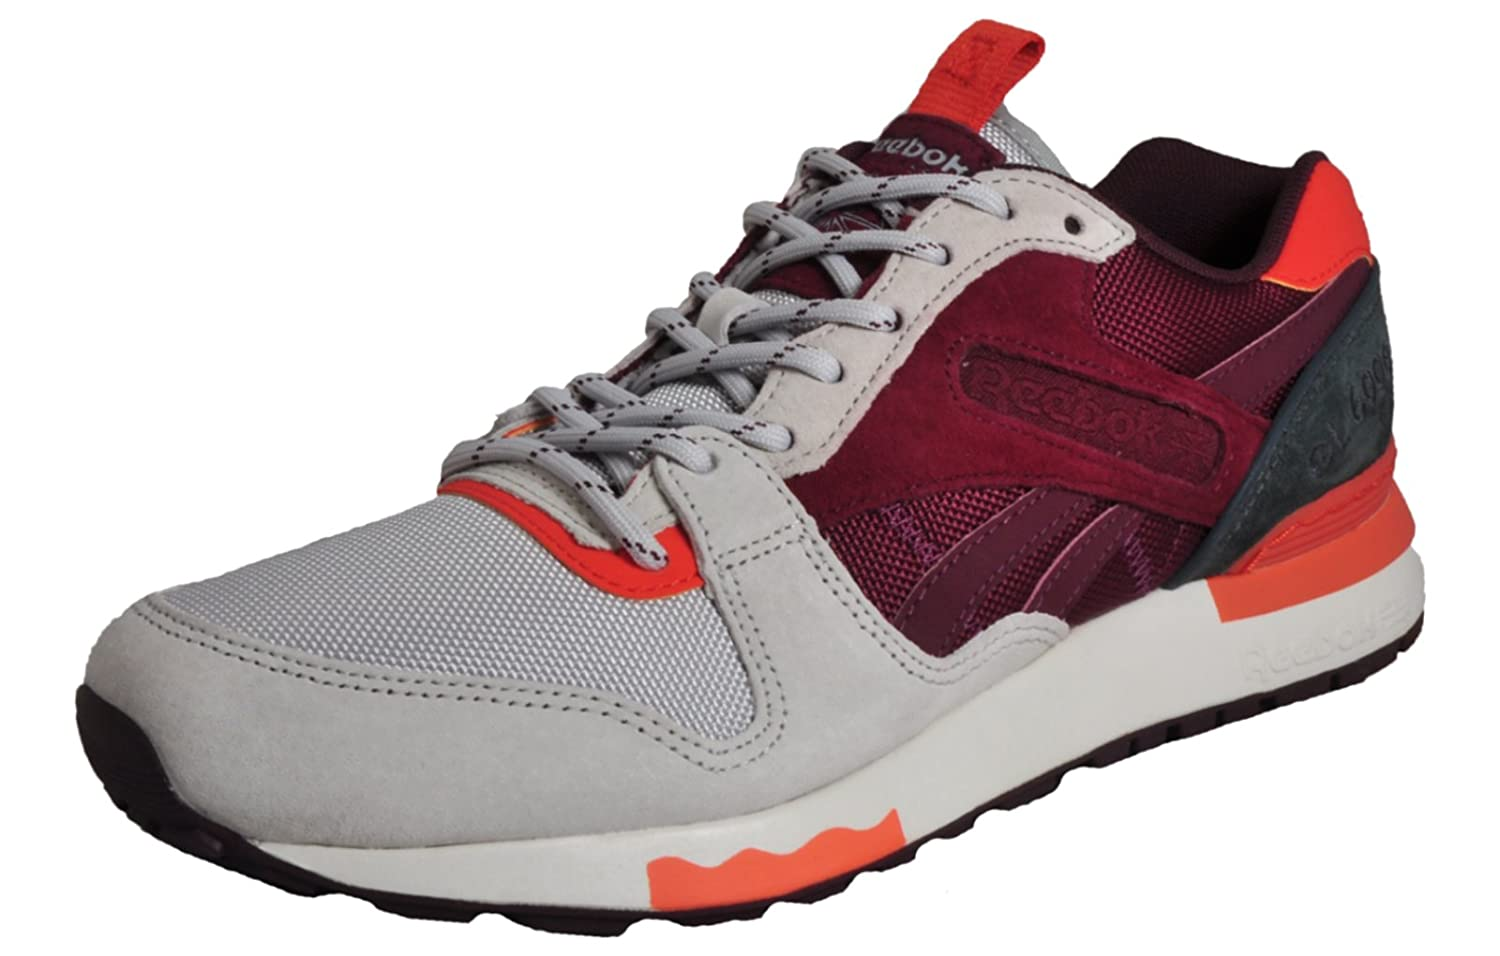 reebok shoes gl 6000 price in india